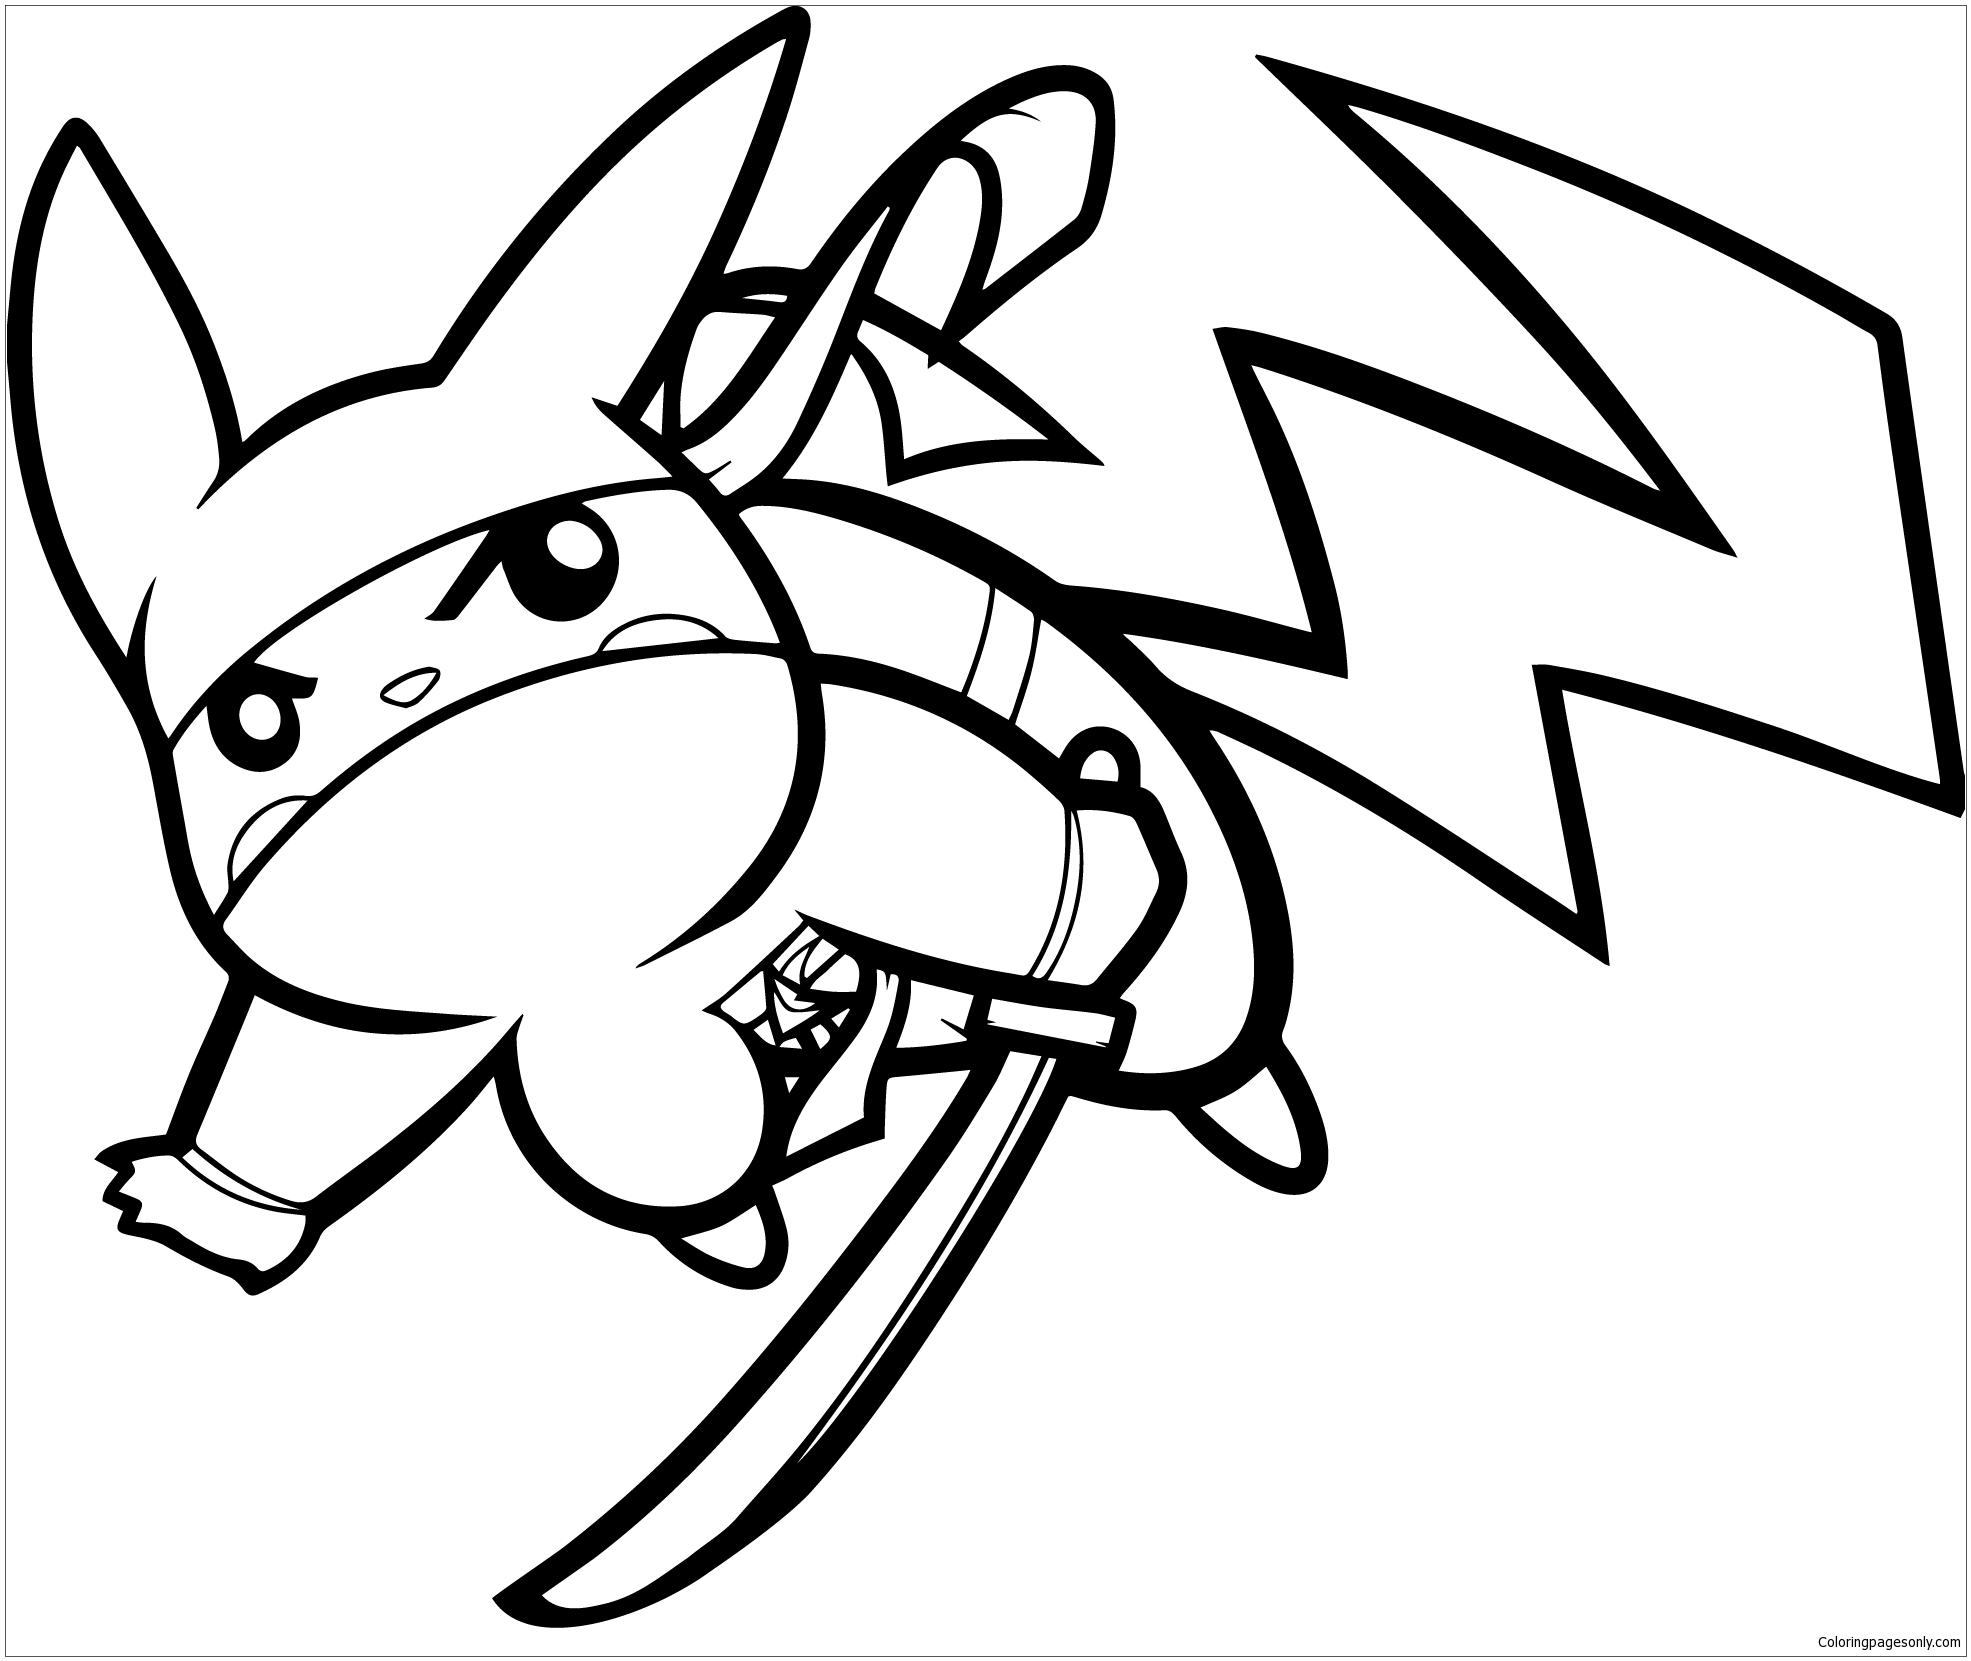 Pikachu Ninja Coloring Page - Free Coloring Pages Online